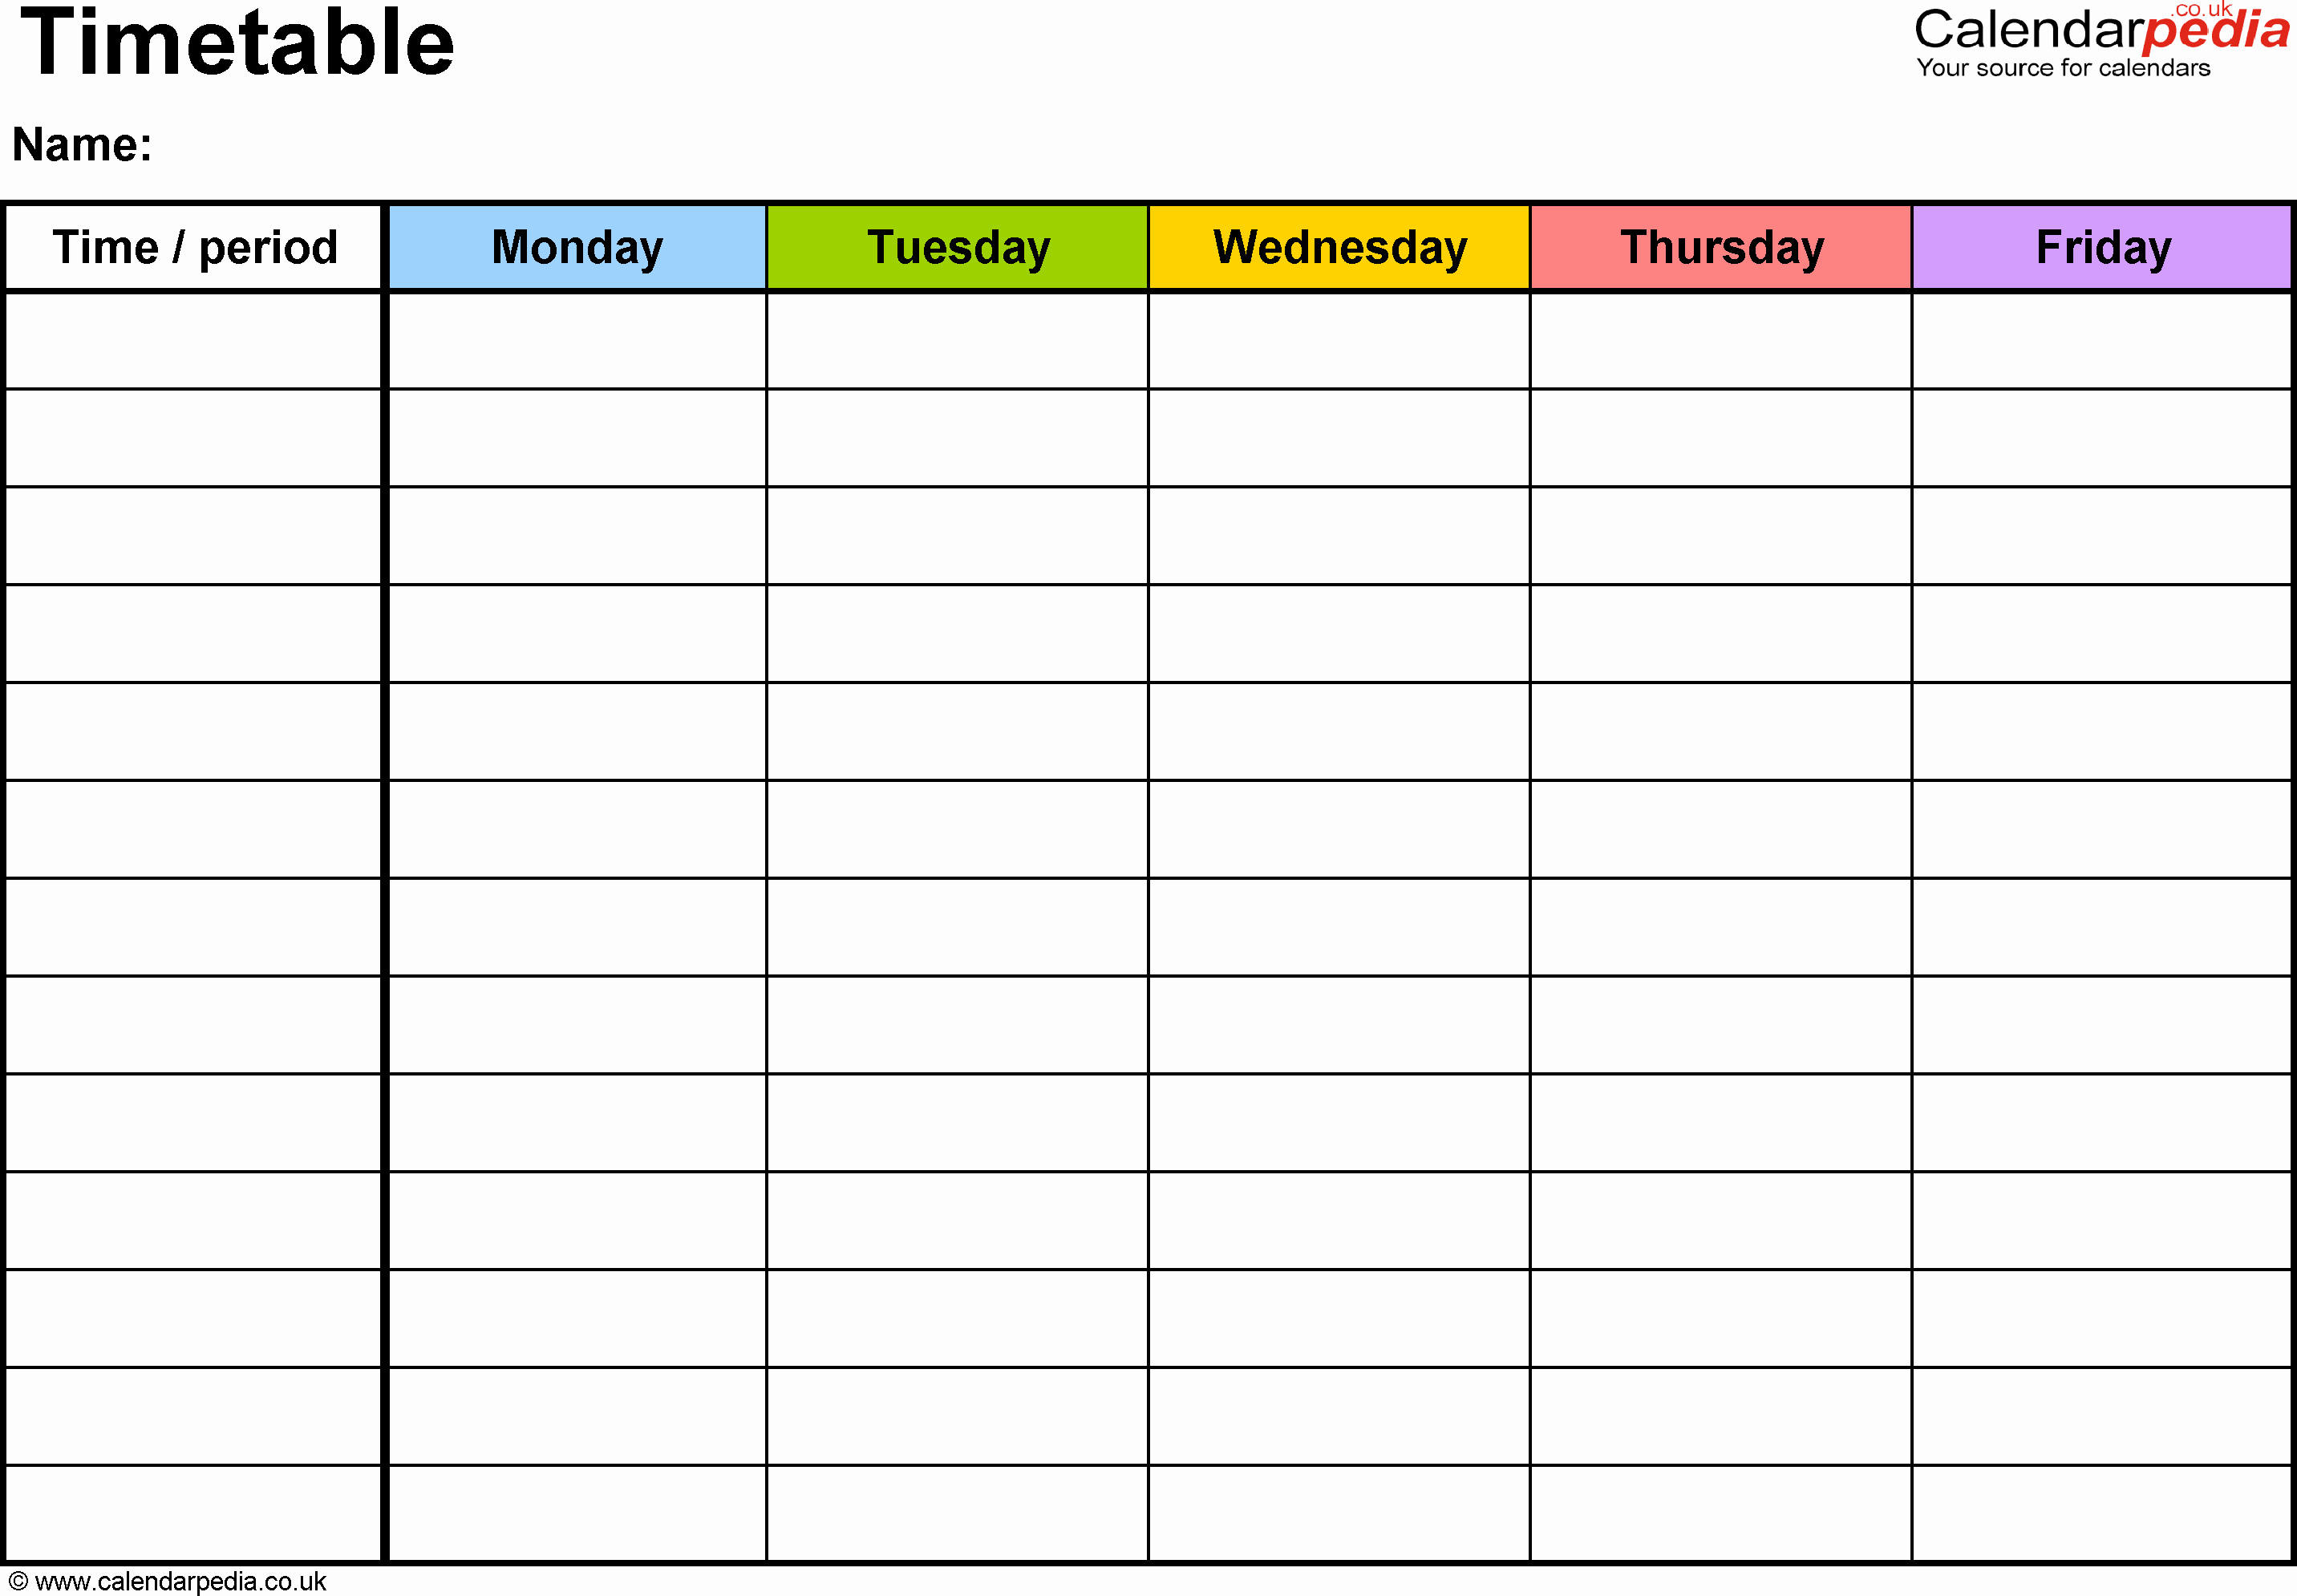 Class Schedule Maker for Teachers Inspirational Timetables as Free Printable Templates for Microsoft Word